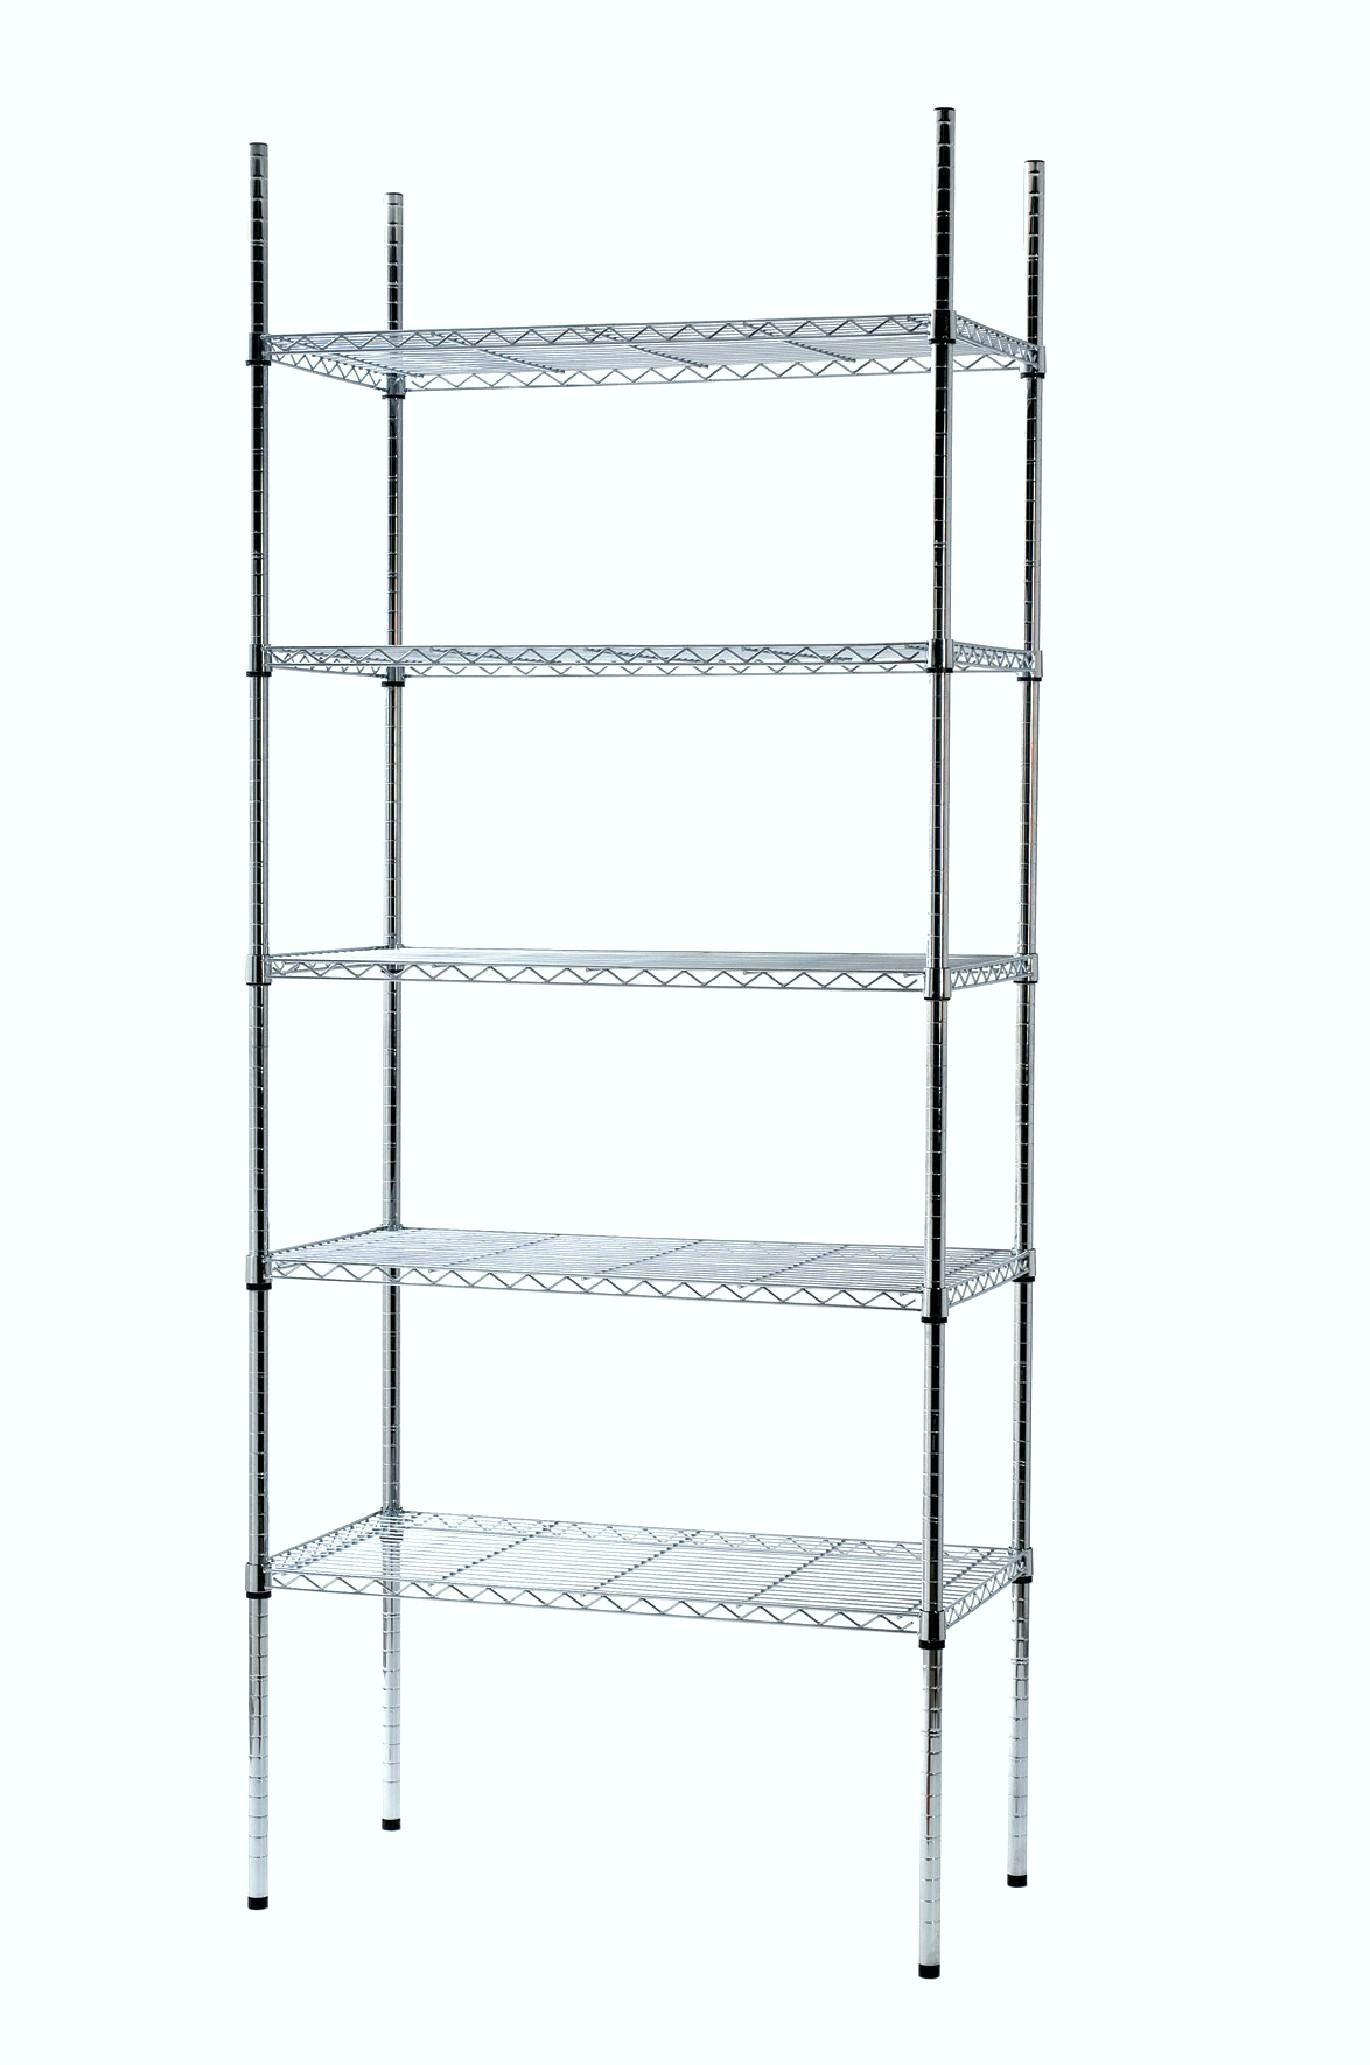 Best Of Rayonnage Castorama Home Decor Wardrobe Rack Metal